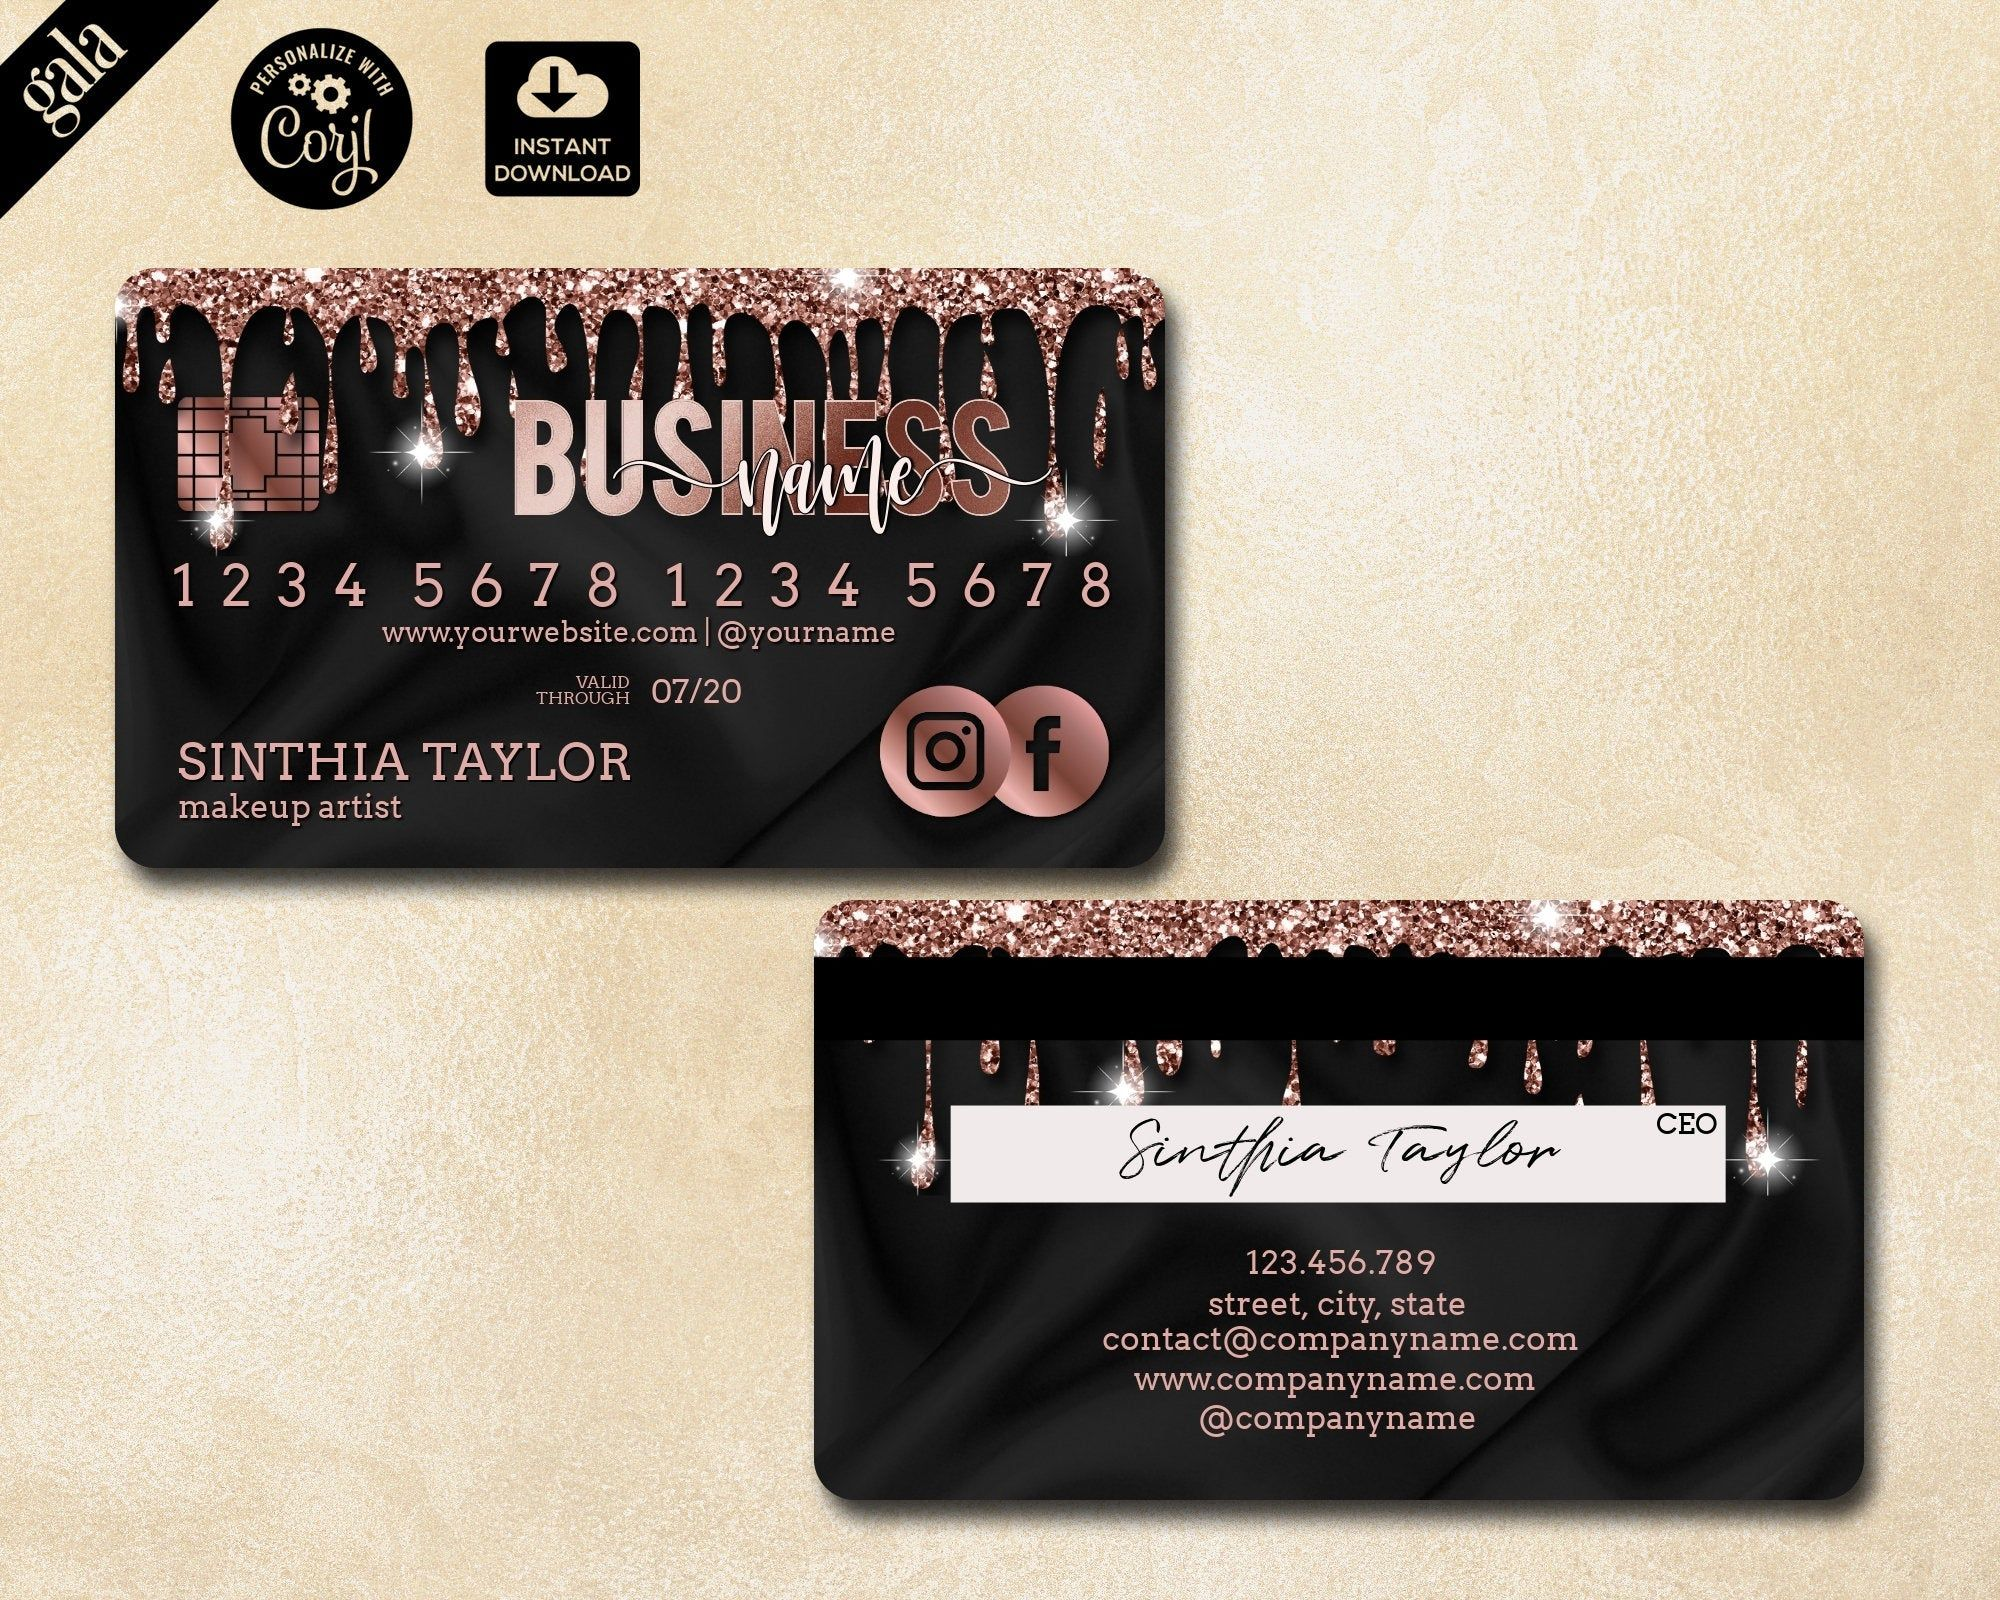 Credit Card Business Card Template Dripping Gold Credit Card Etsy Salon Business Cards Beauty Salon Business Cards Makeup Artist Business Cards